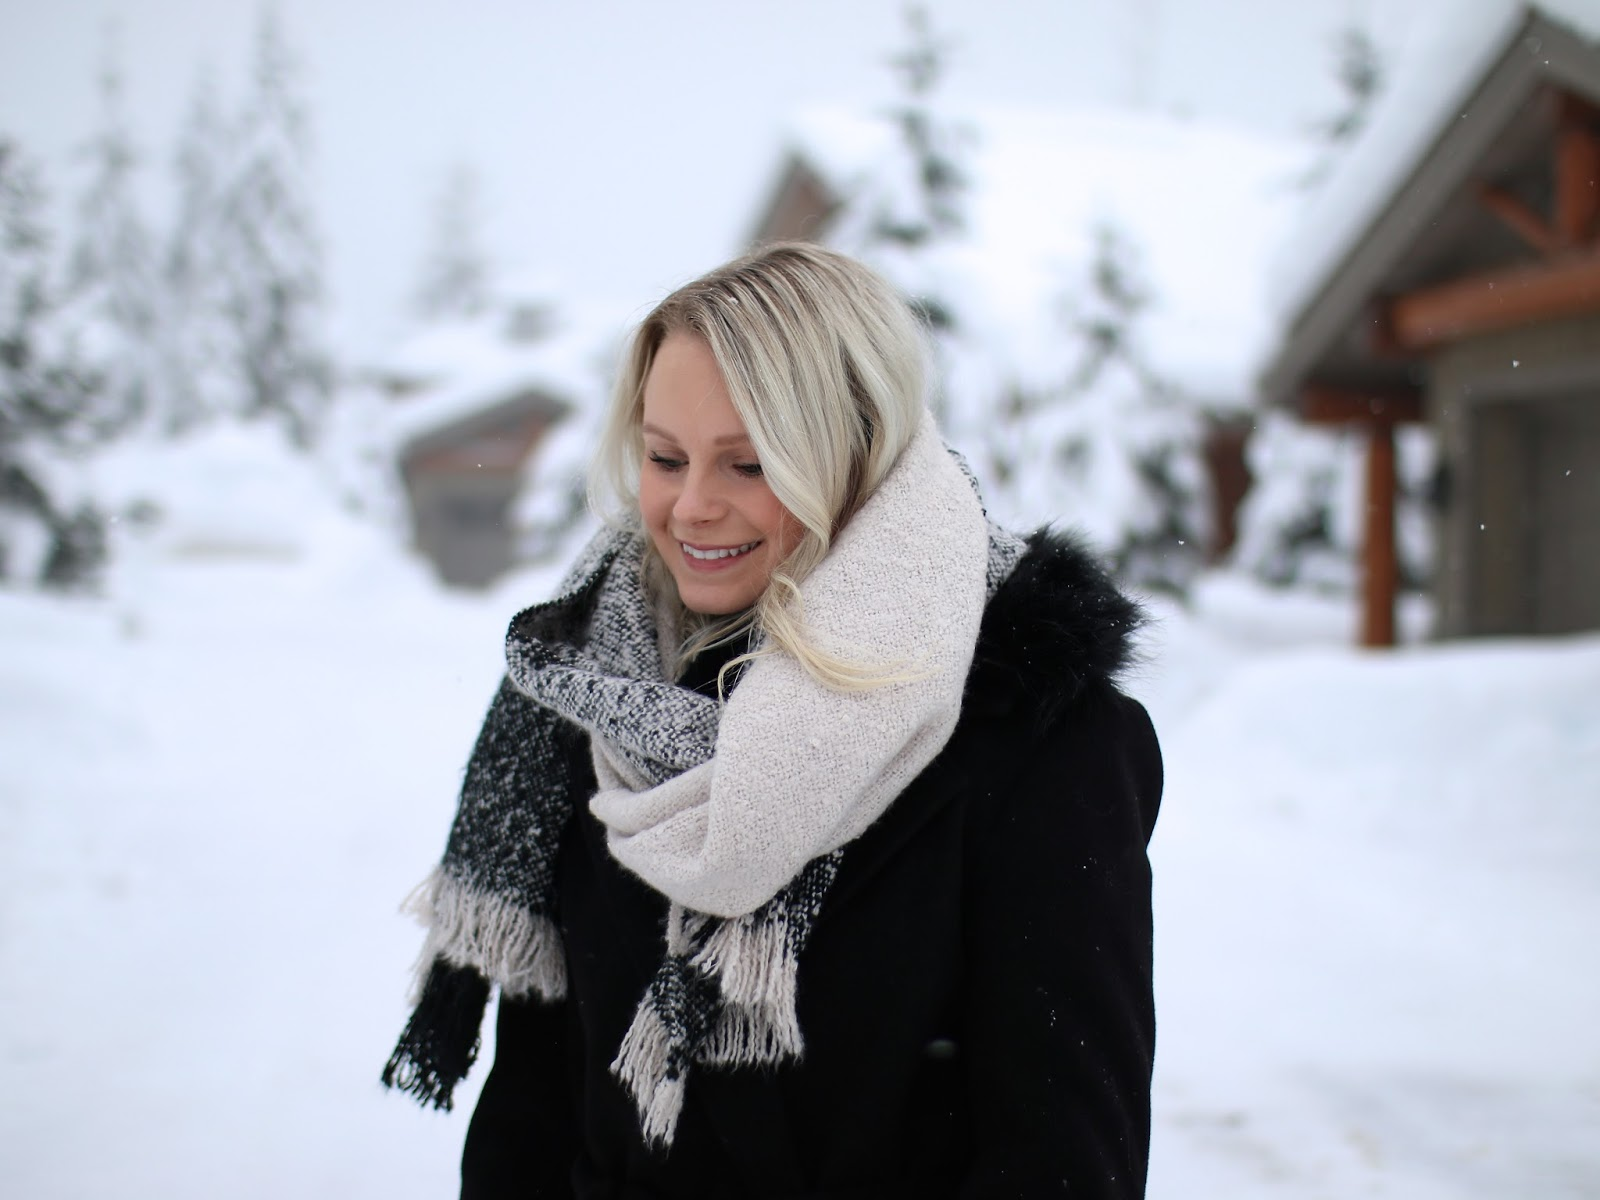 a blonde women models how to style over a beige over sized scarf standing in the snow